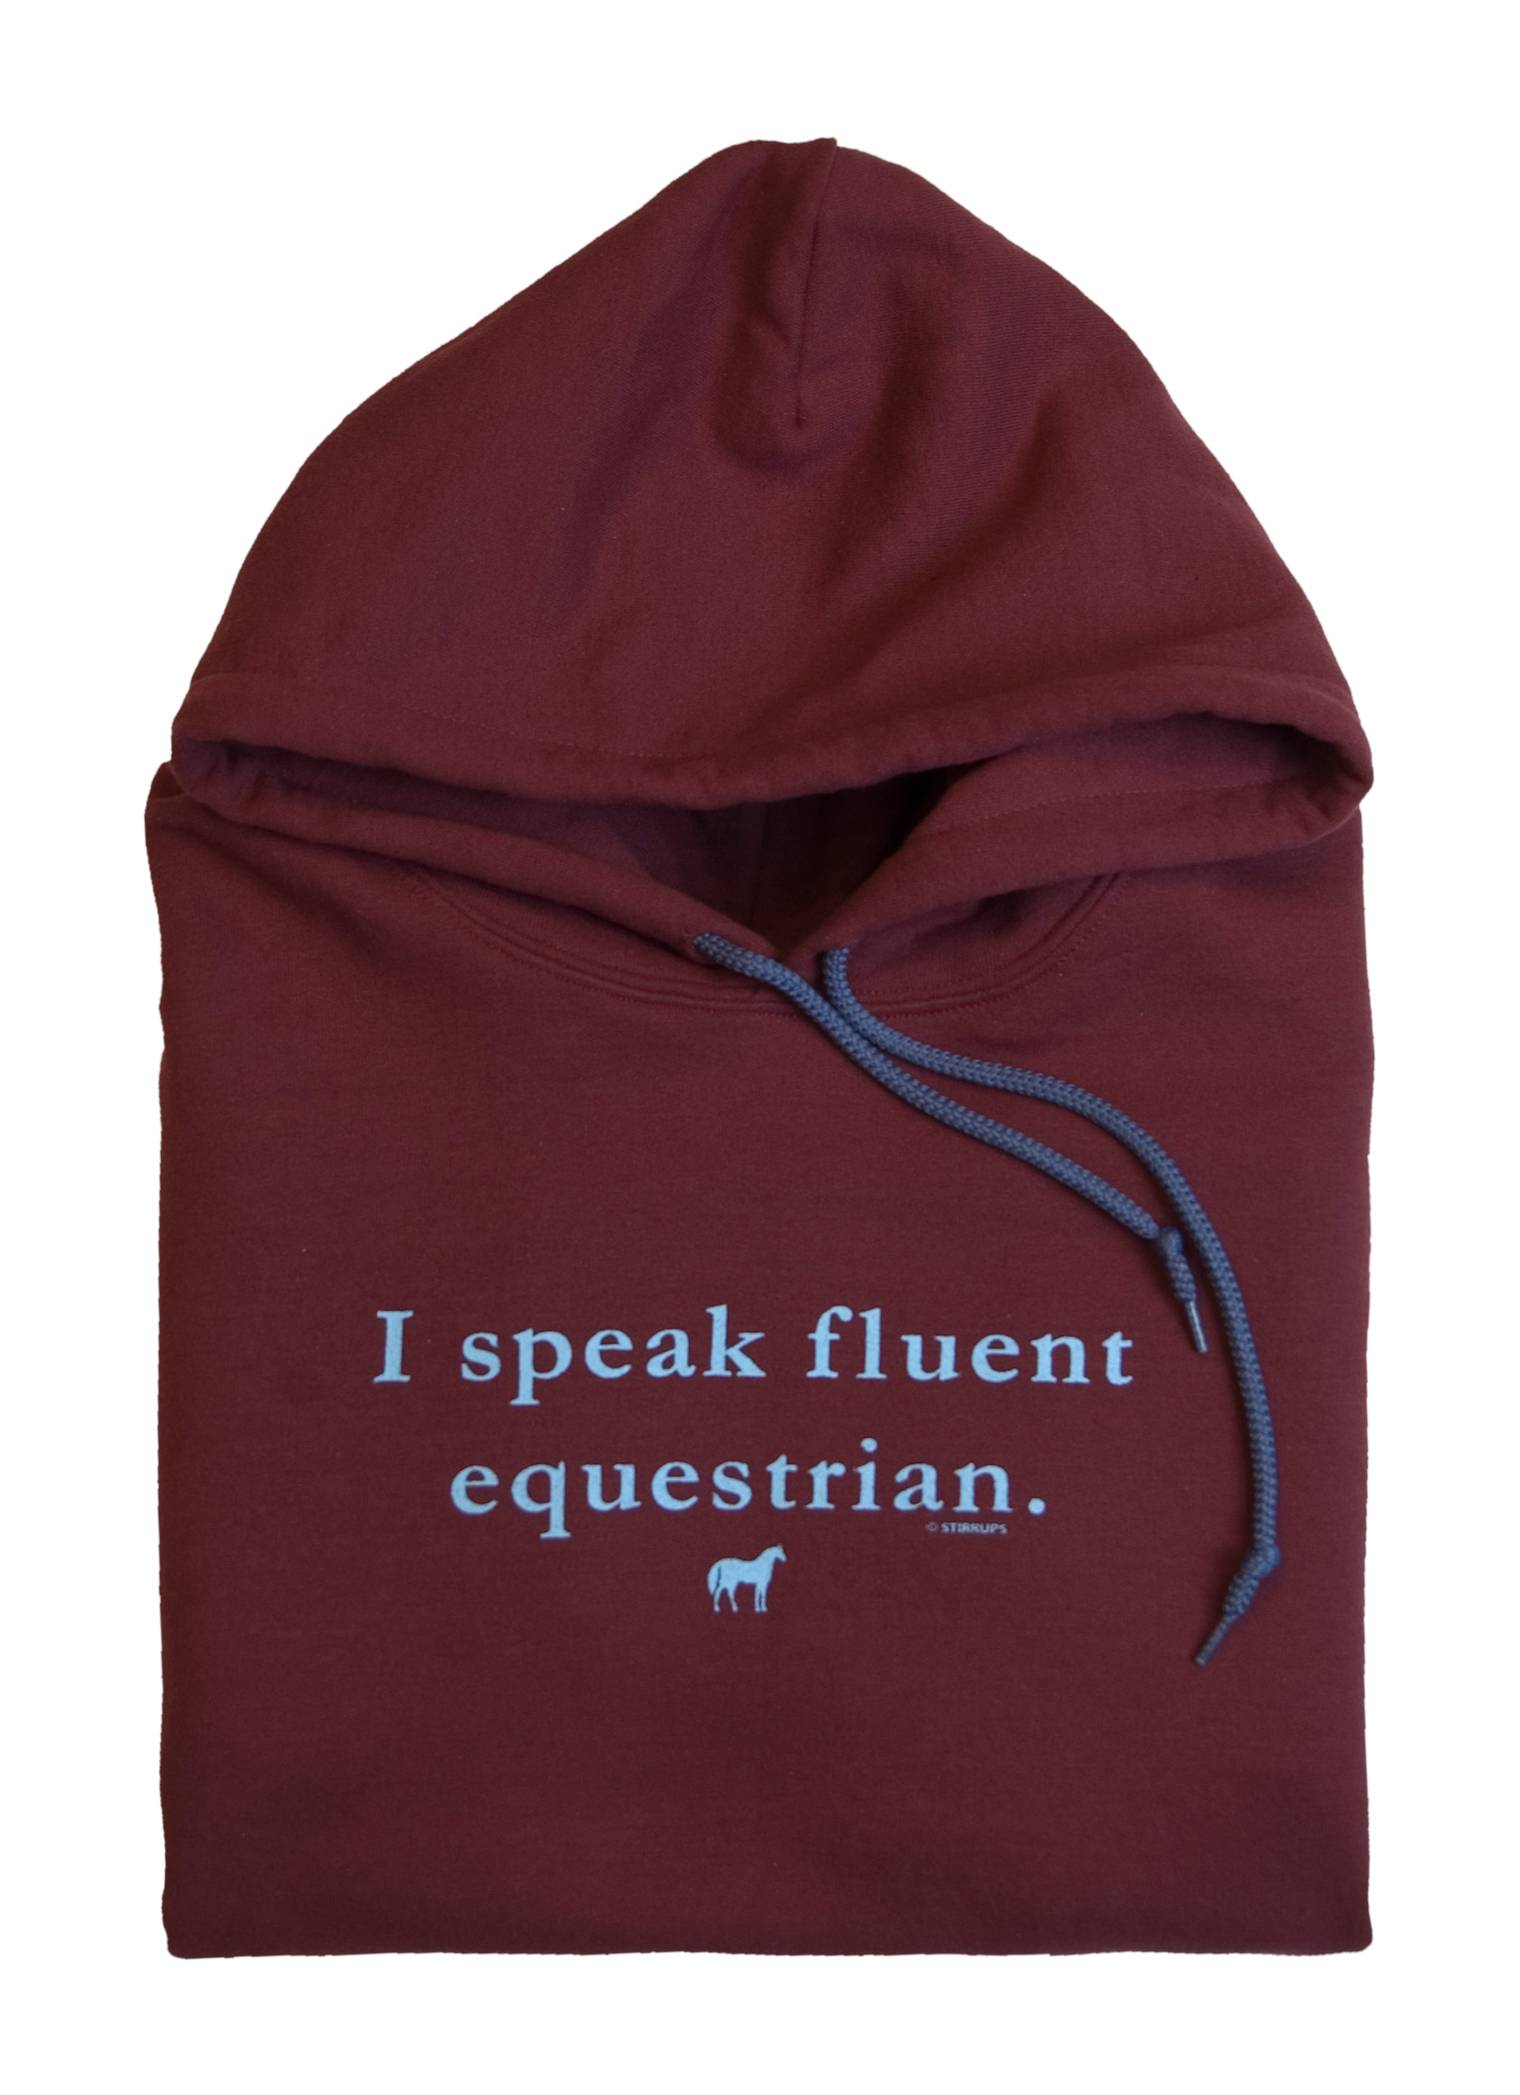 Stirrups I Speak Fluent Equestrian Hooded Sweatshirt - Ladies